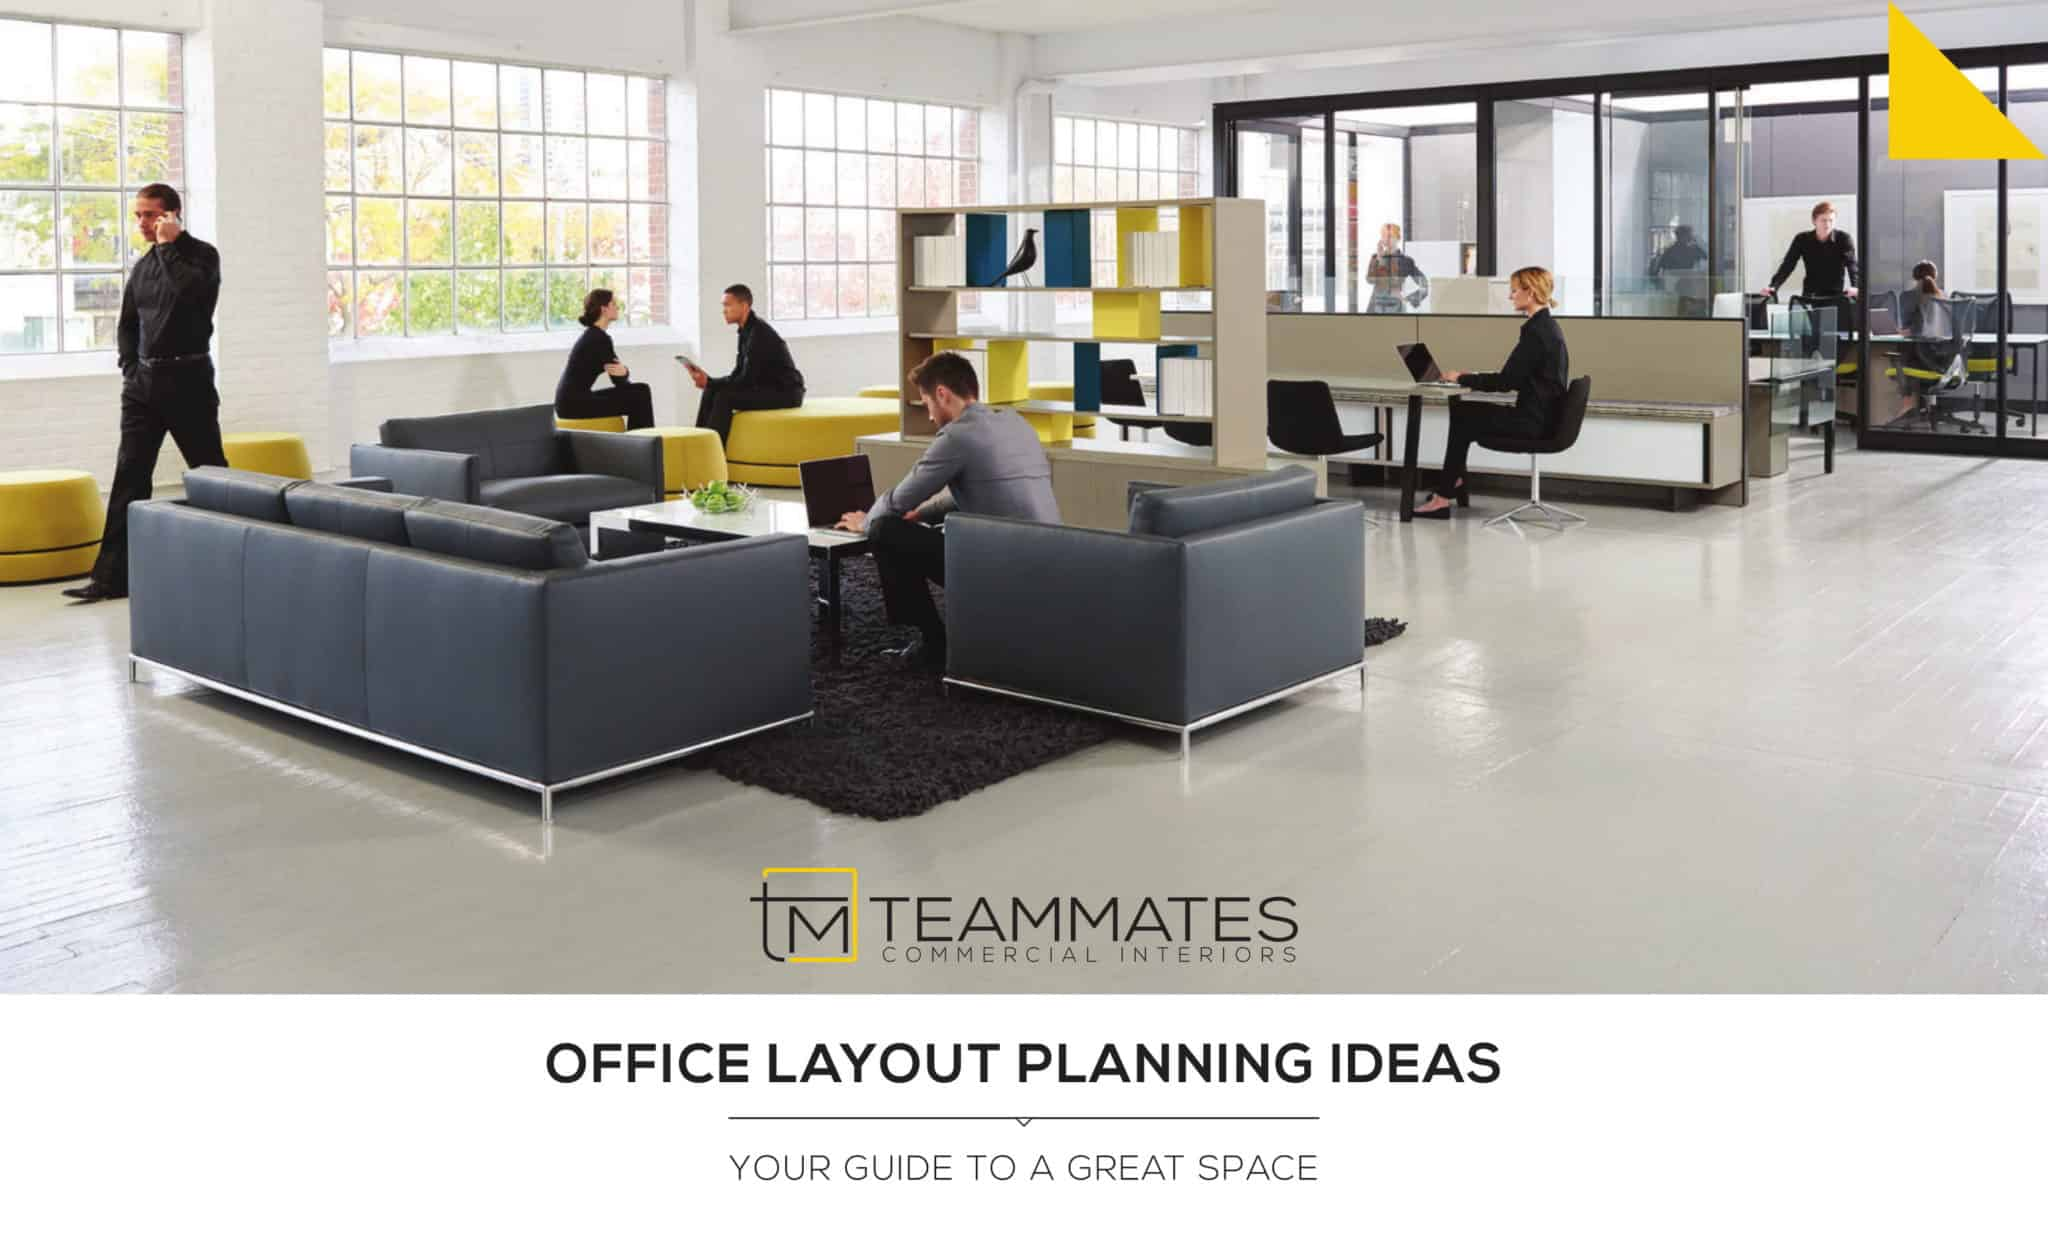 Office Arrangement Ideas Print Design Portfolio Flyers Brochures Booklets And More